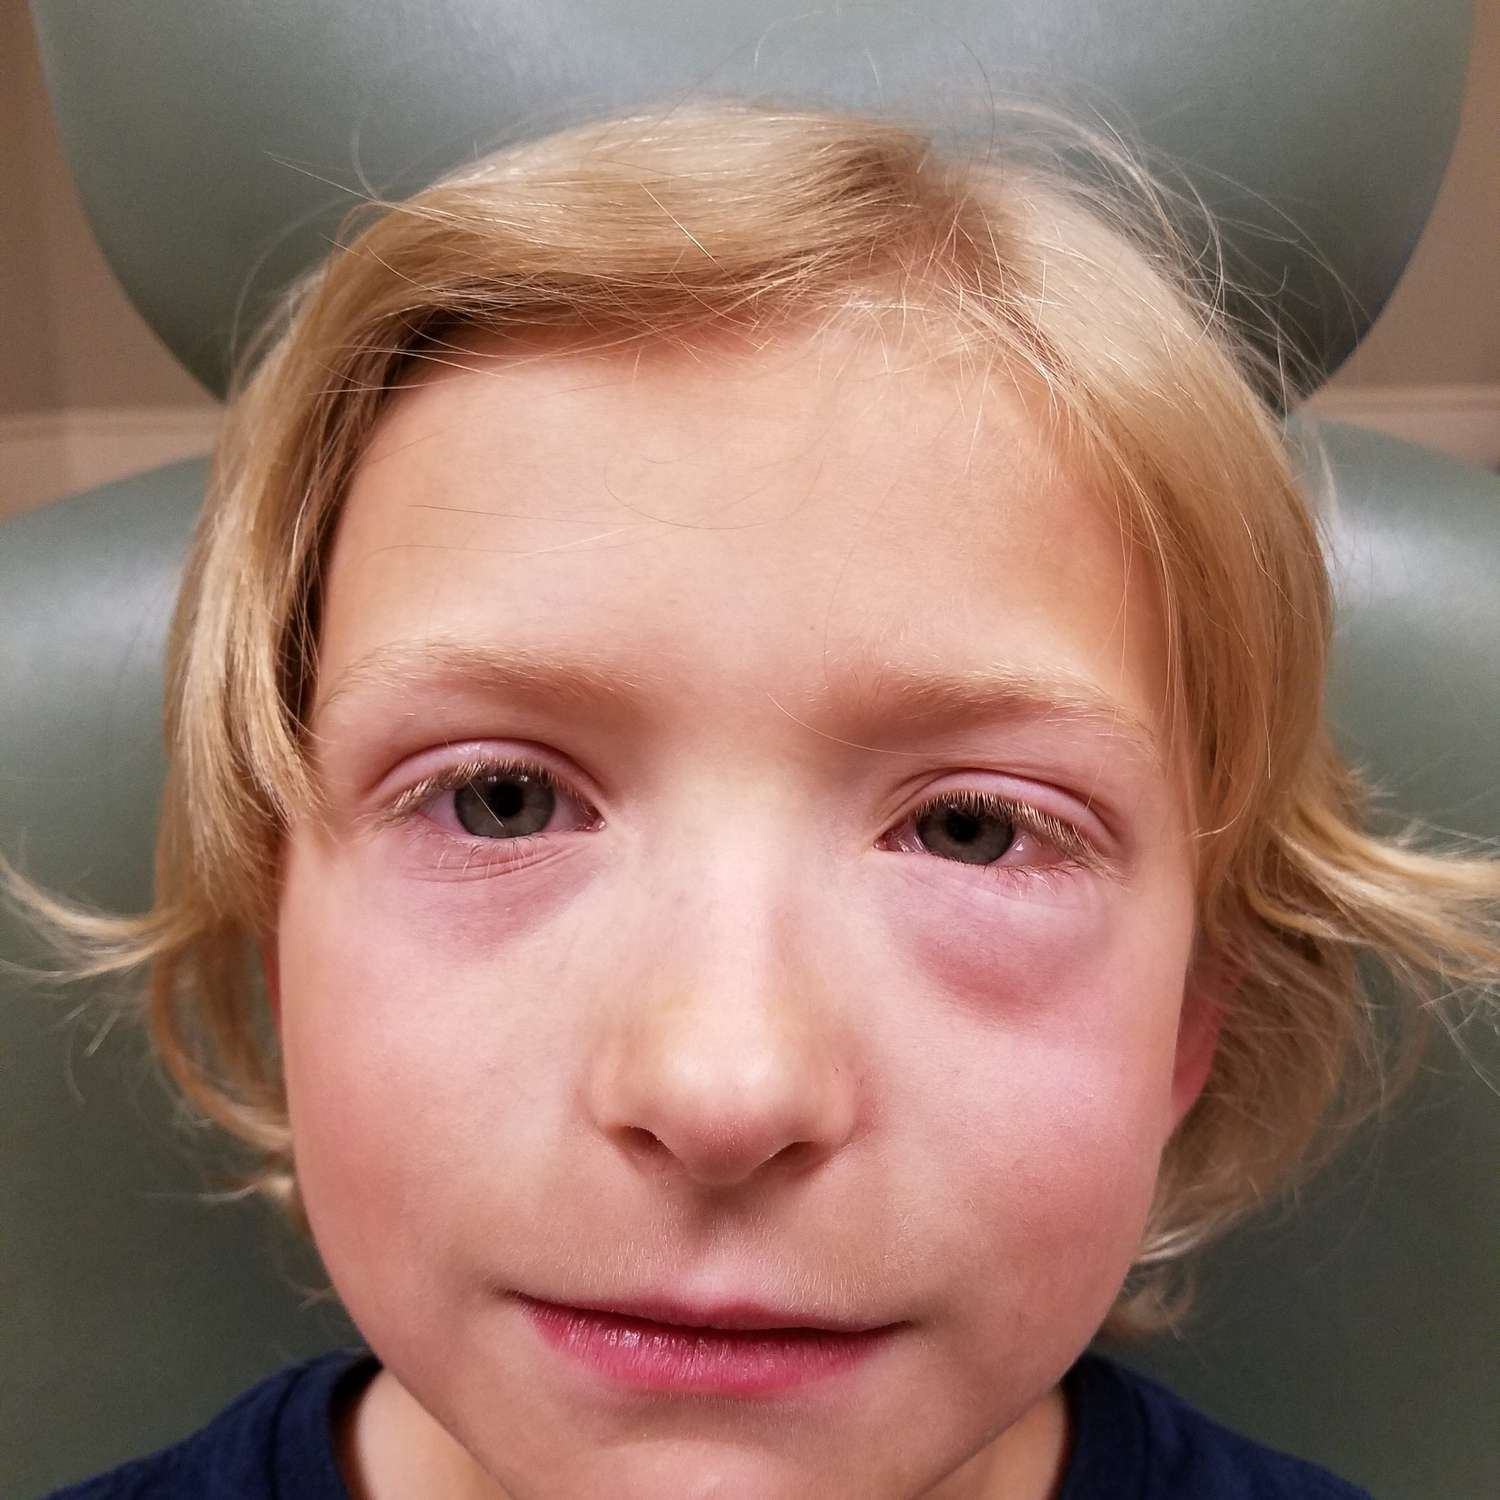 Close-up portrait of boy with eye allergies.